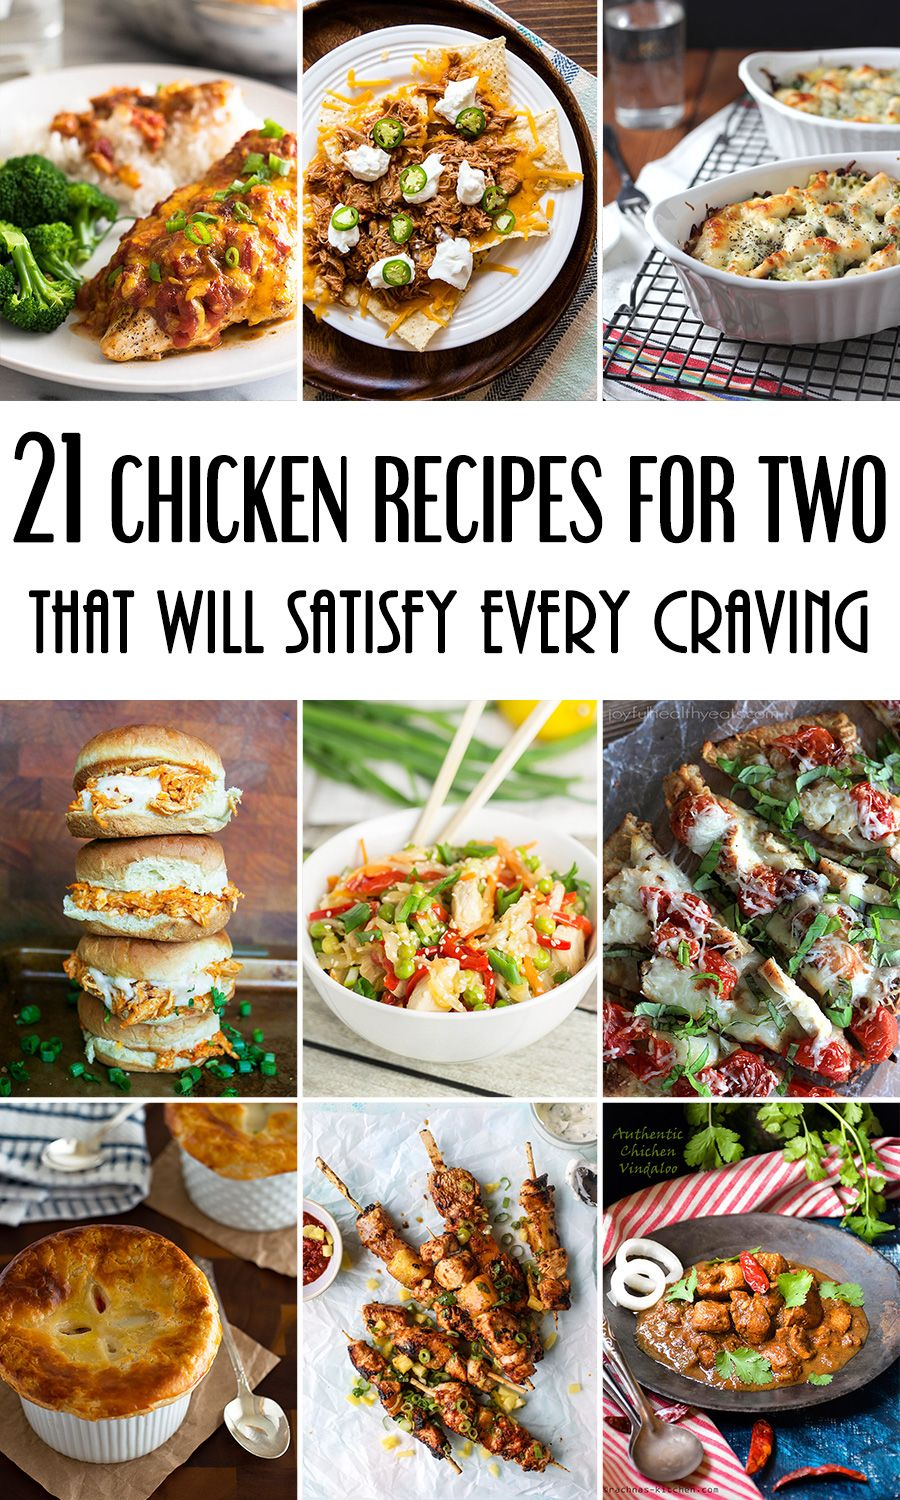 Photo of 21 Chicken Recipes For Two That Will Satisfy Every Craving